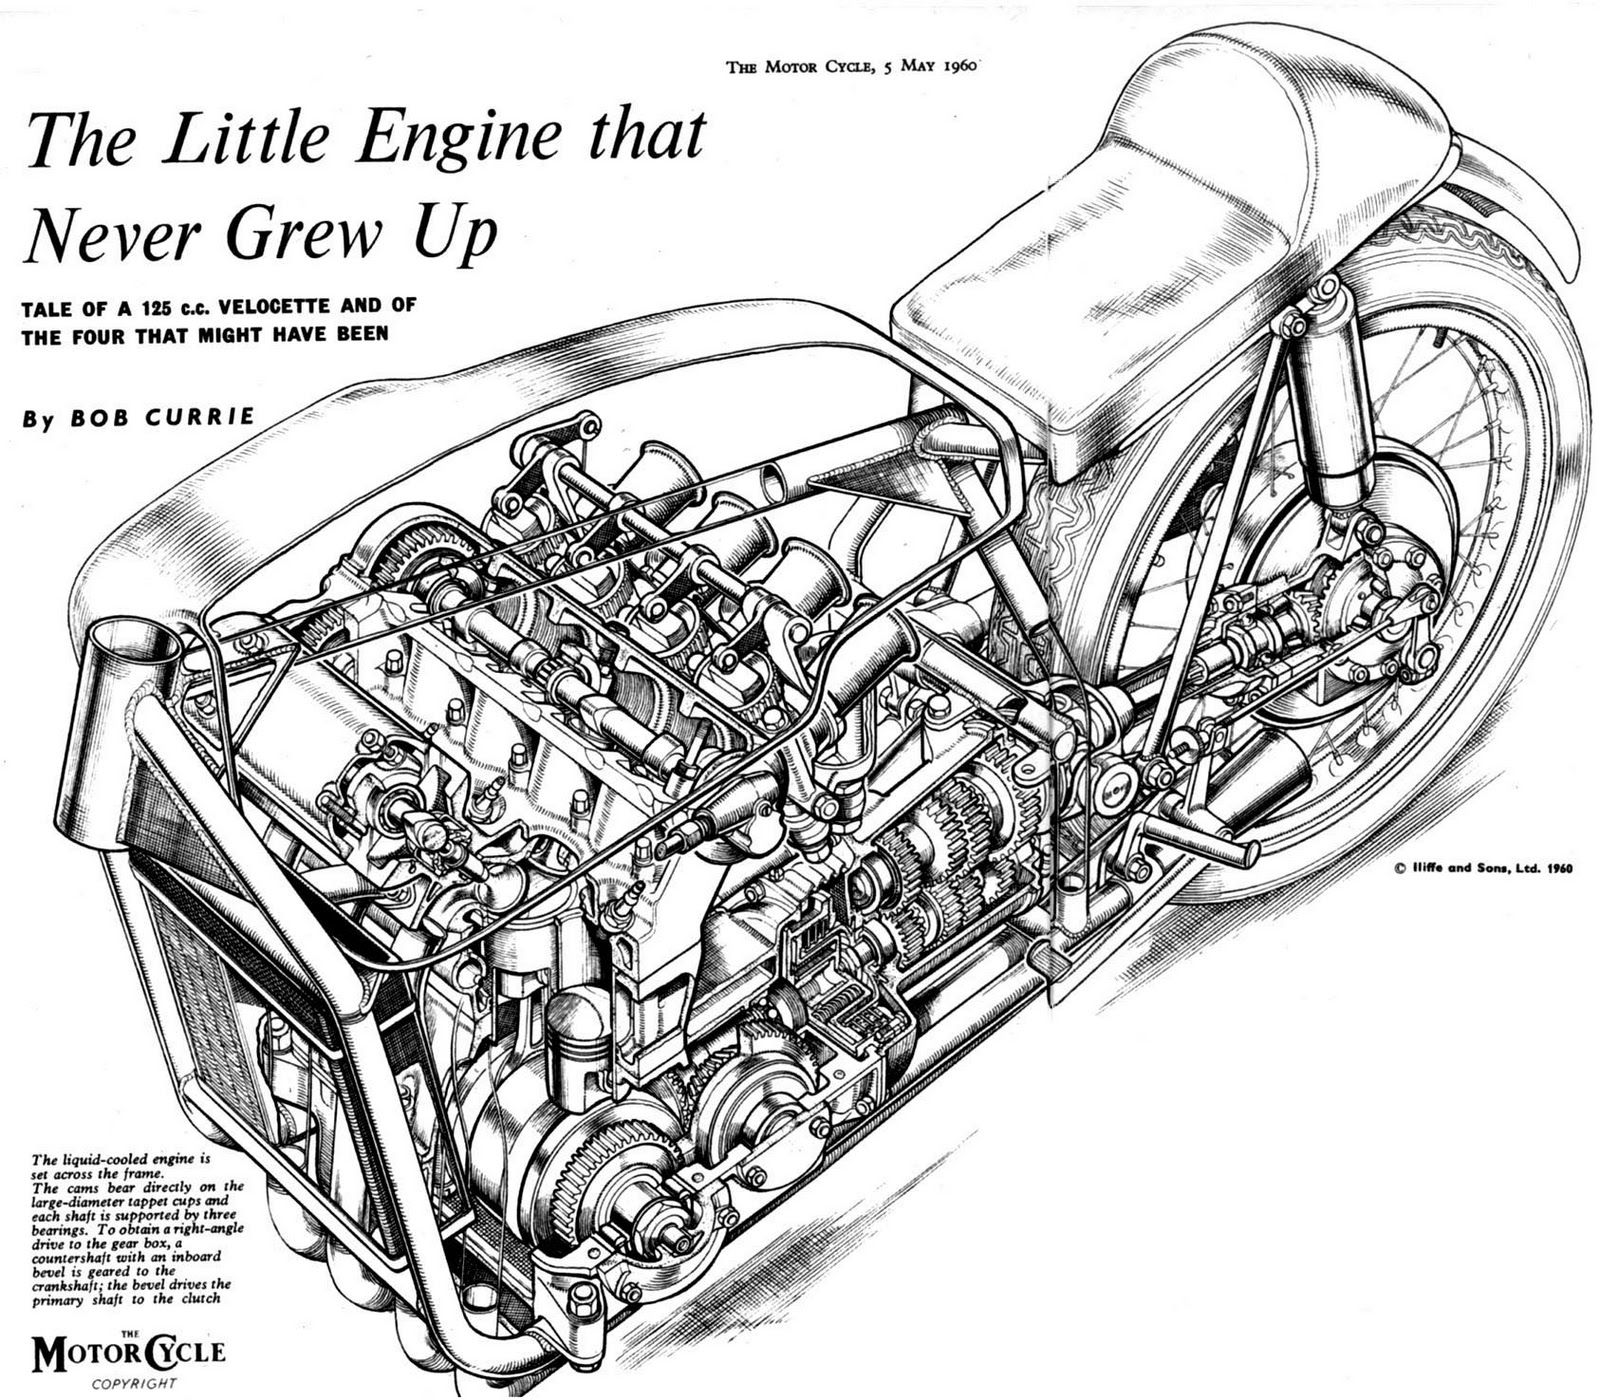 Chevy 4 2l Engine Diagram further Inline Engine Diagram further P 0900c15280084949 also Flathead engine in addition What Are The Symptoms Of A Blown Head Gasket. on inline 4 cylinder diesel engines